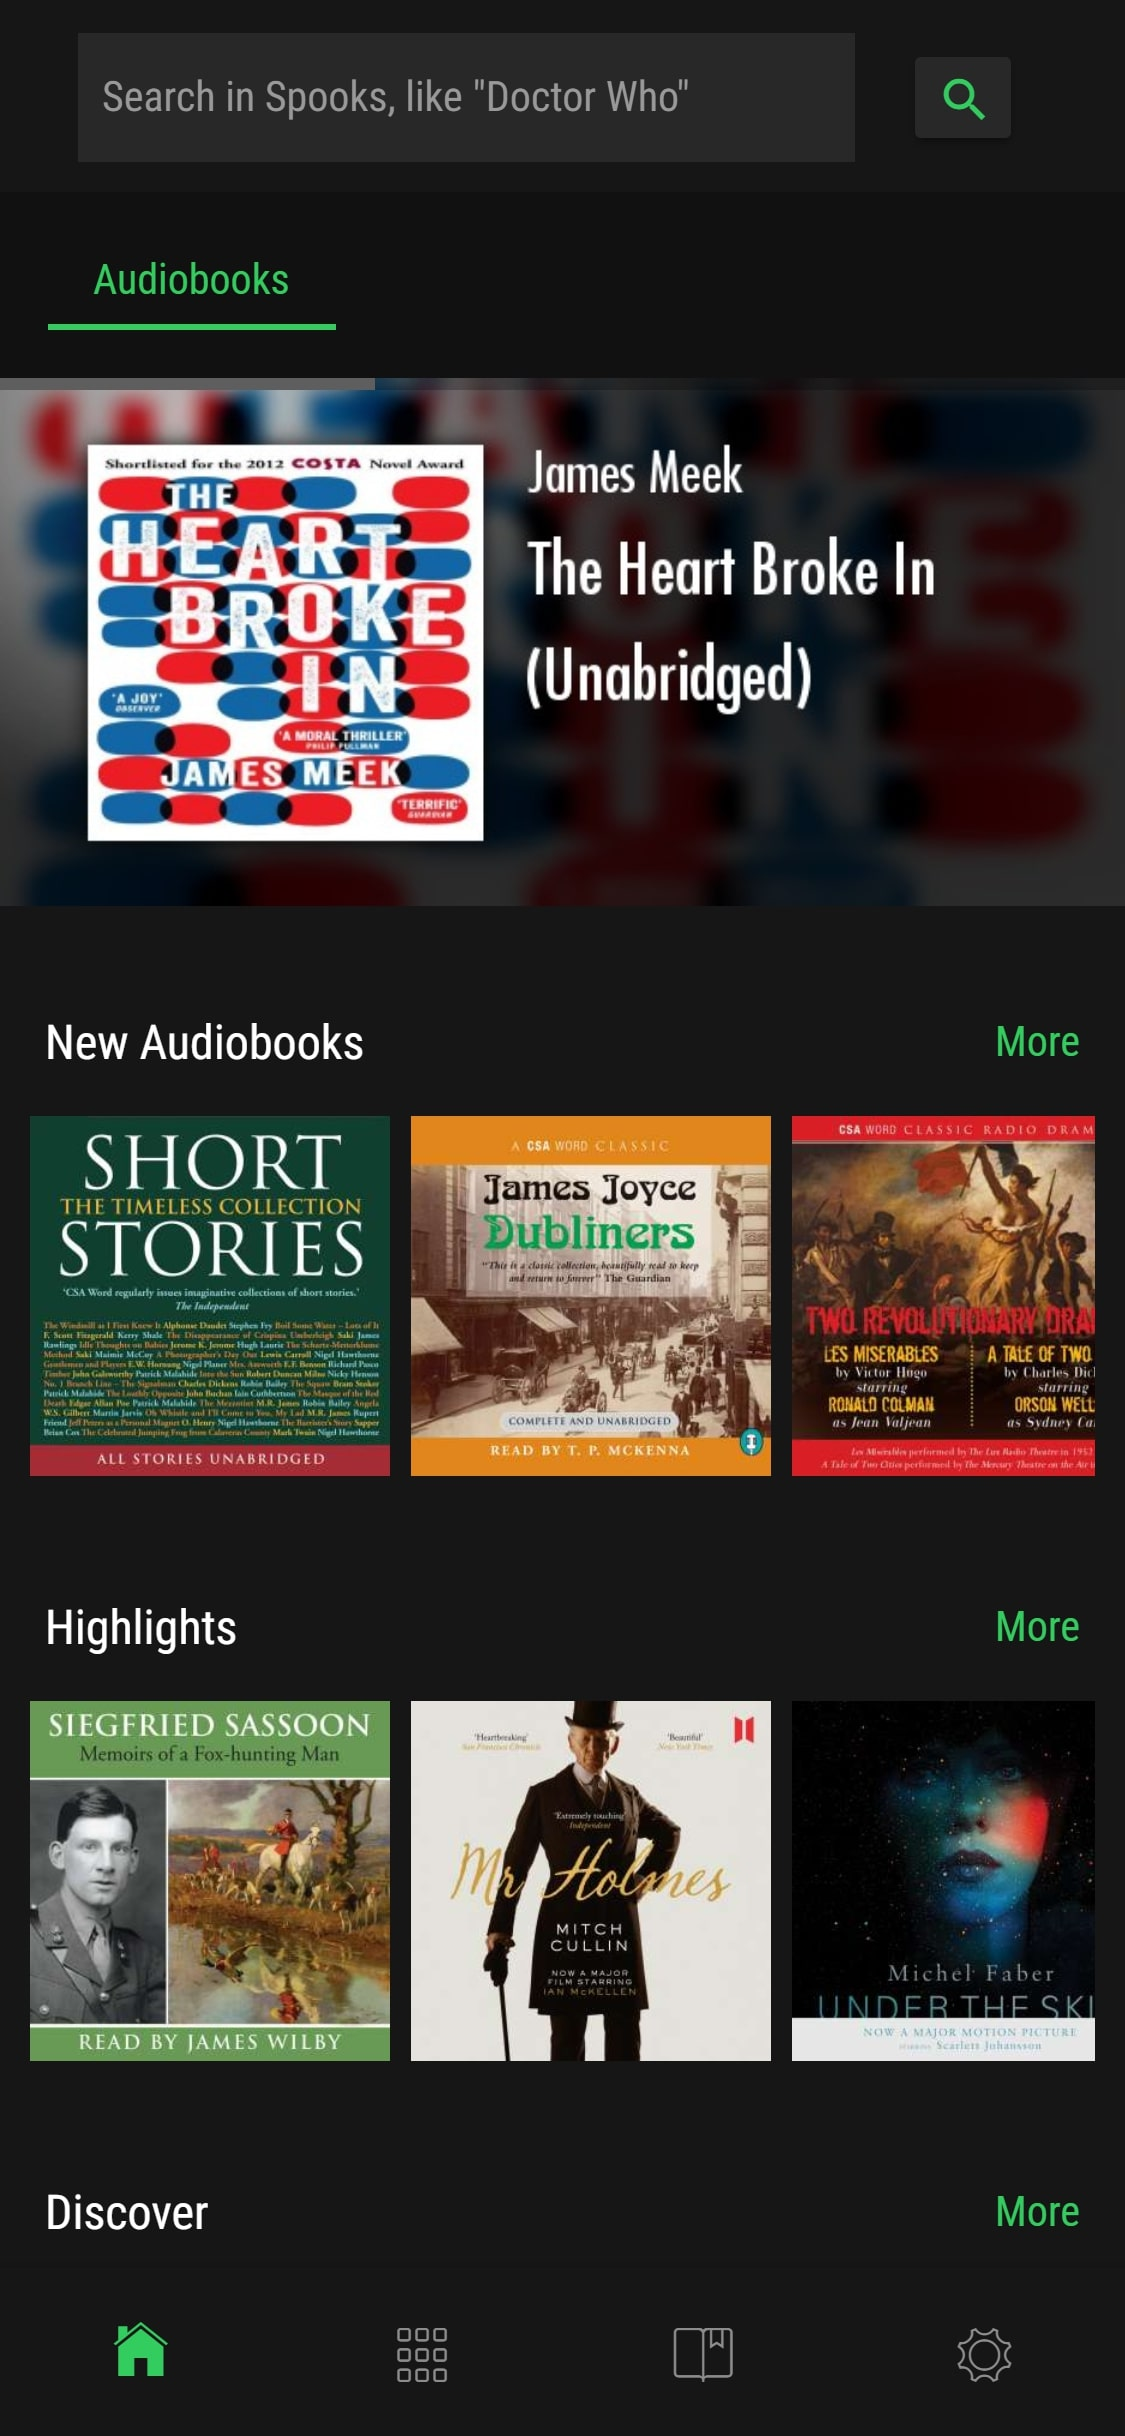 Spooks - Discover Audiobooks on Spotify